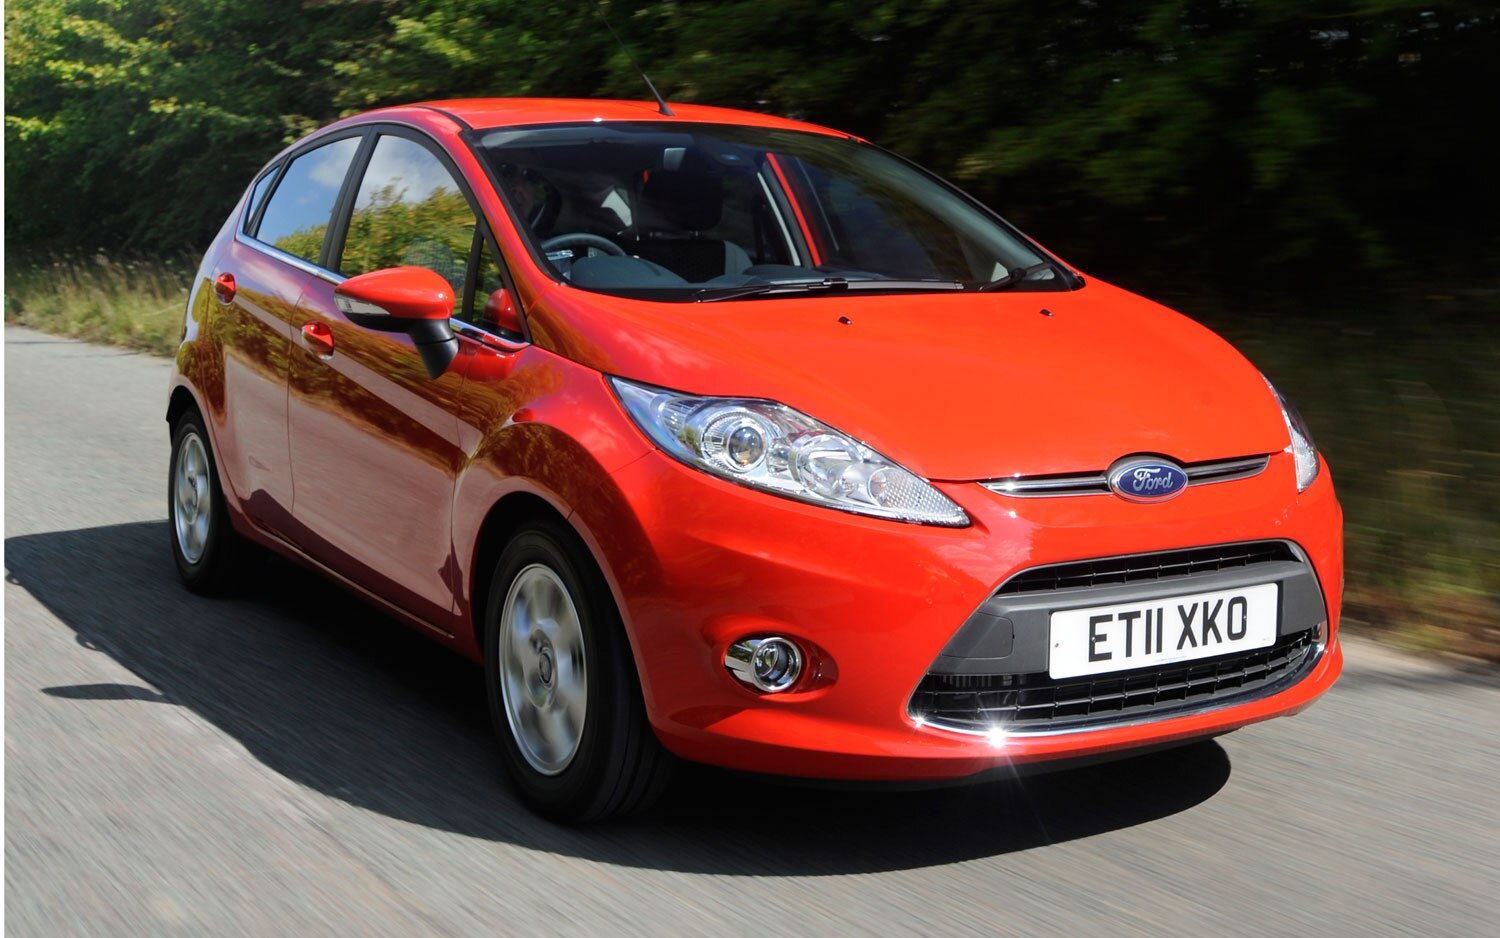 ford replaces fiesta sel and ses models with 2013 fiesta titanium. Black Bedroom Furniture Sets. Home Design Ideas